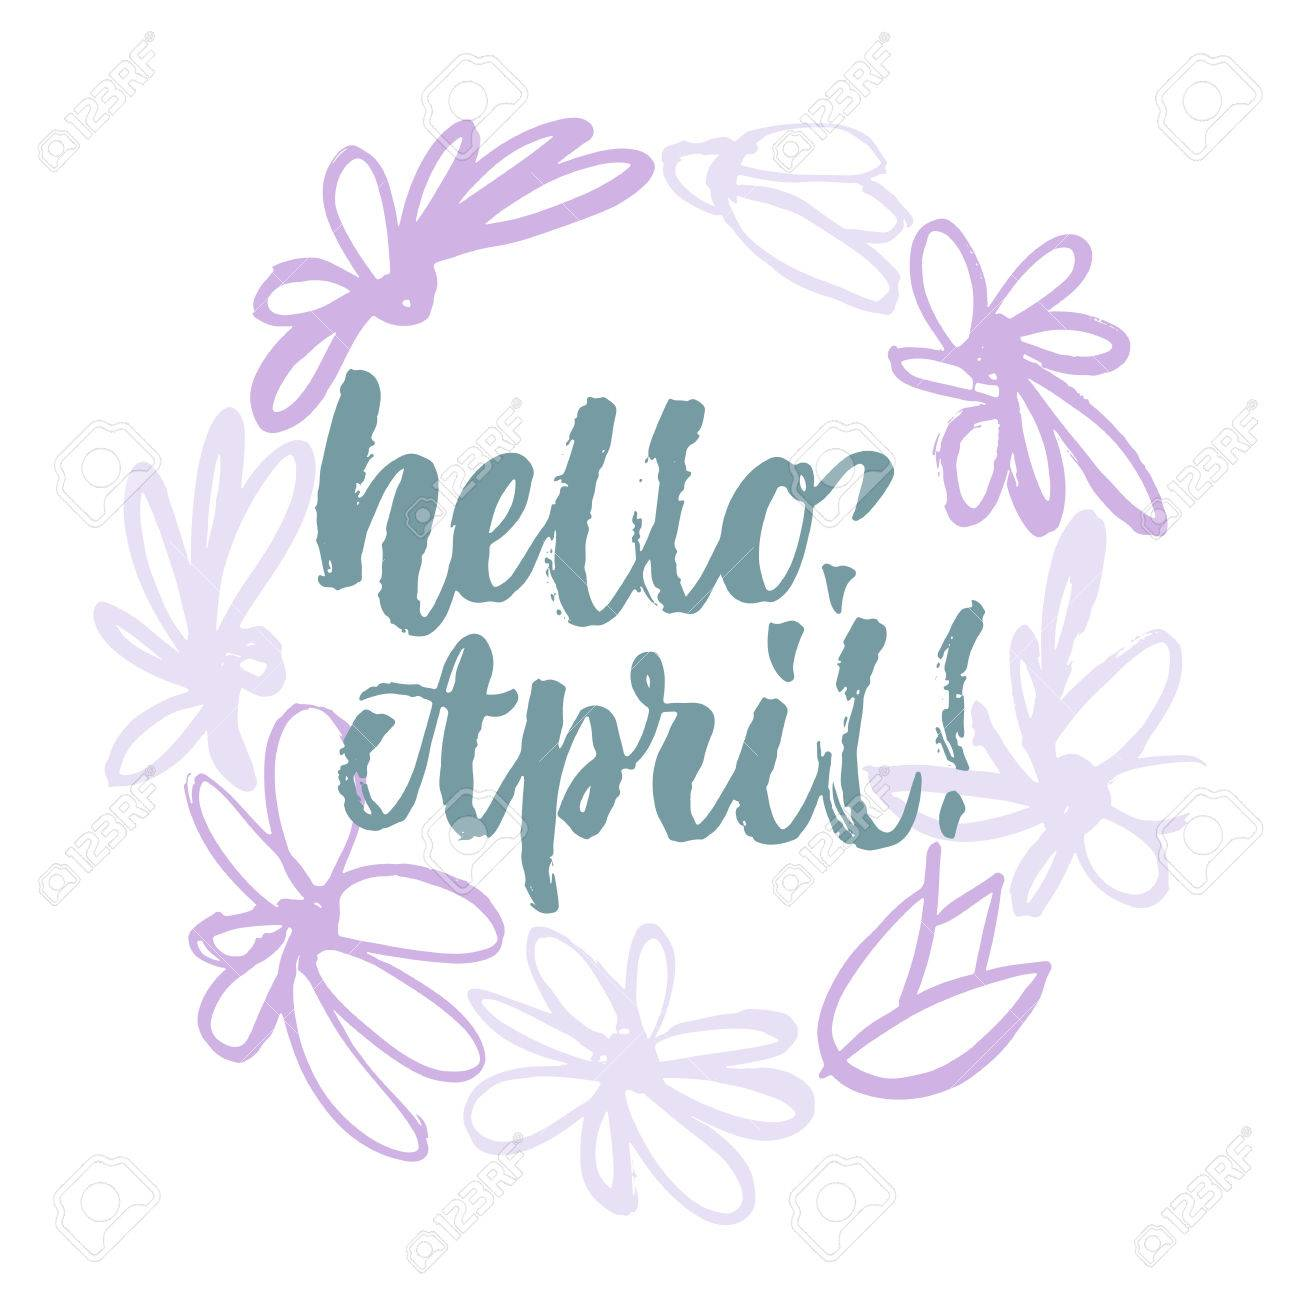 Hello april handwritten lettering calligraphy in the sketch hand...